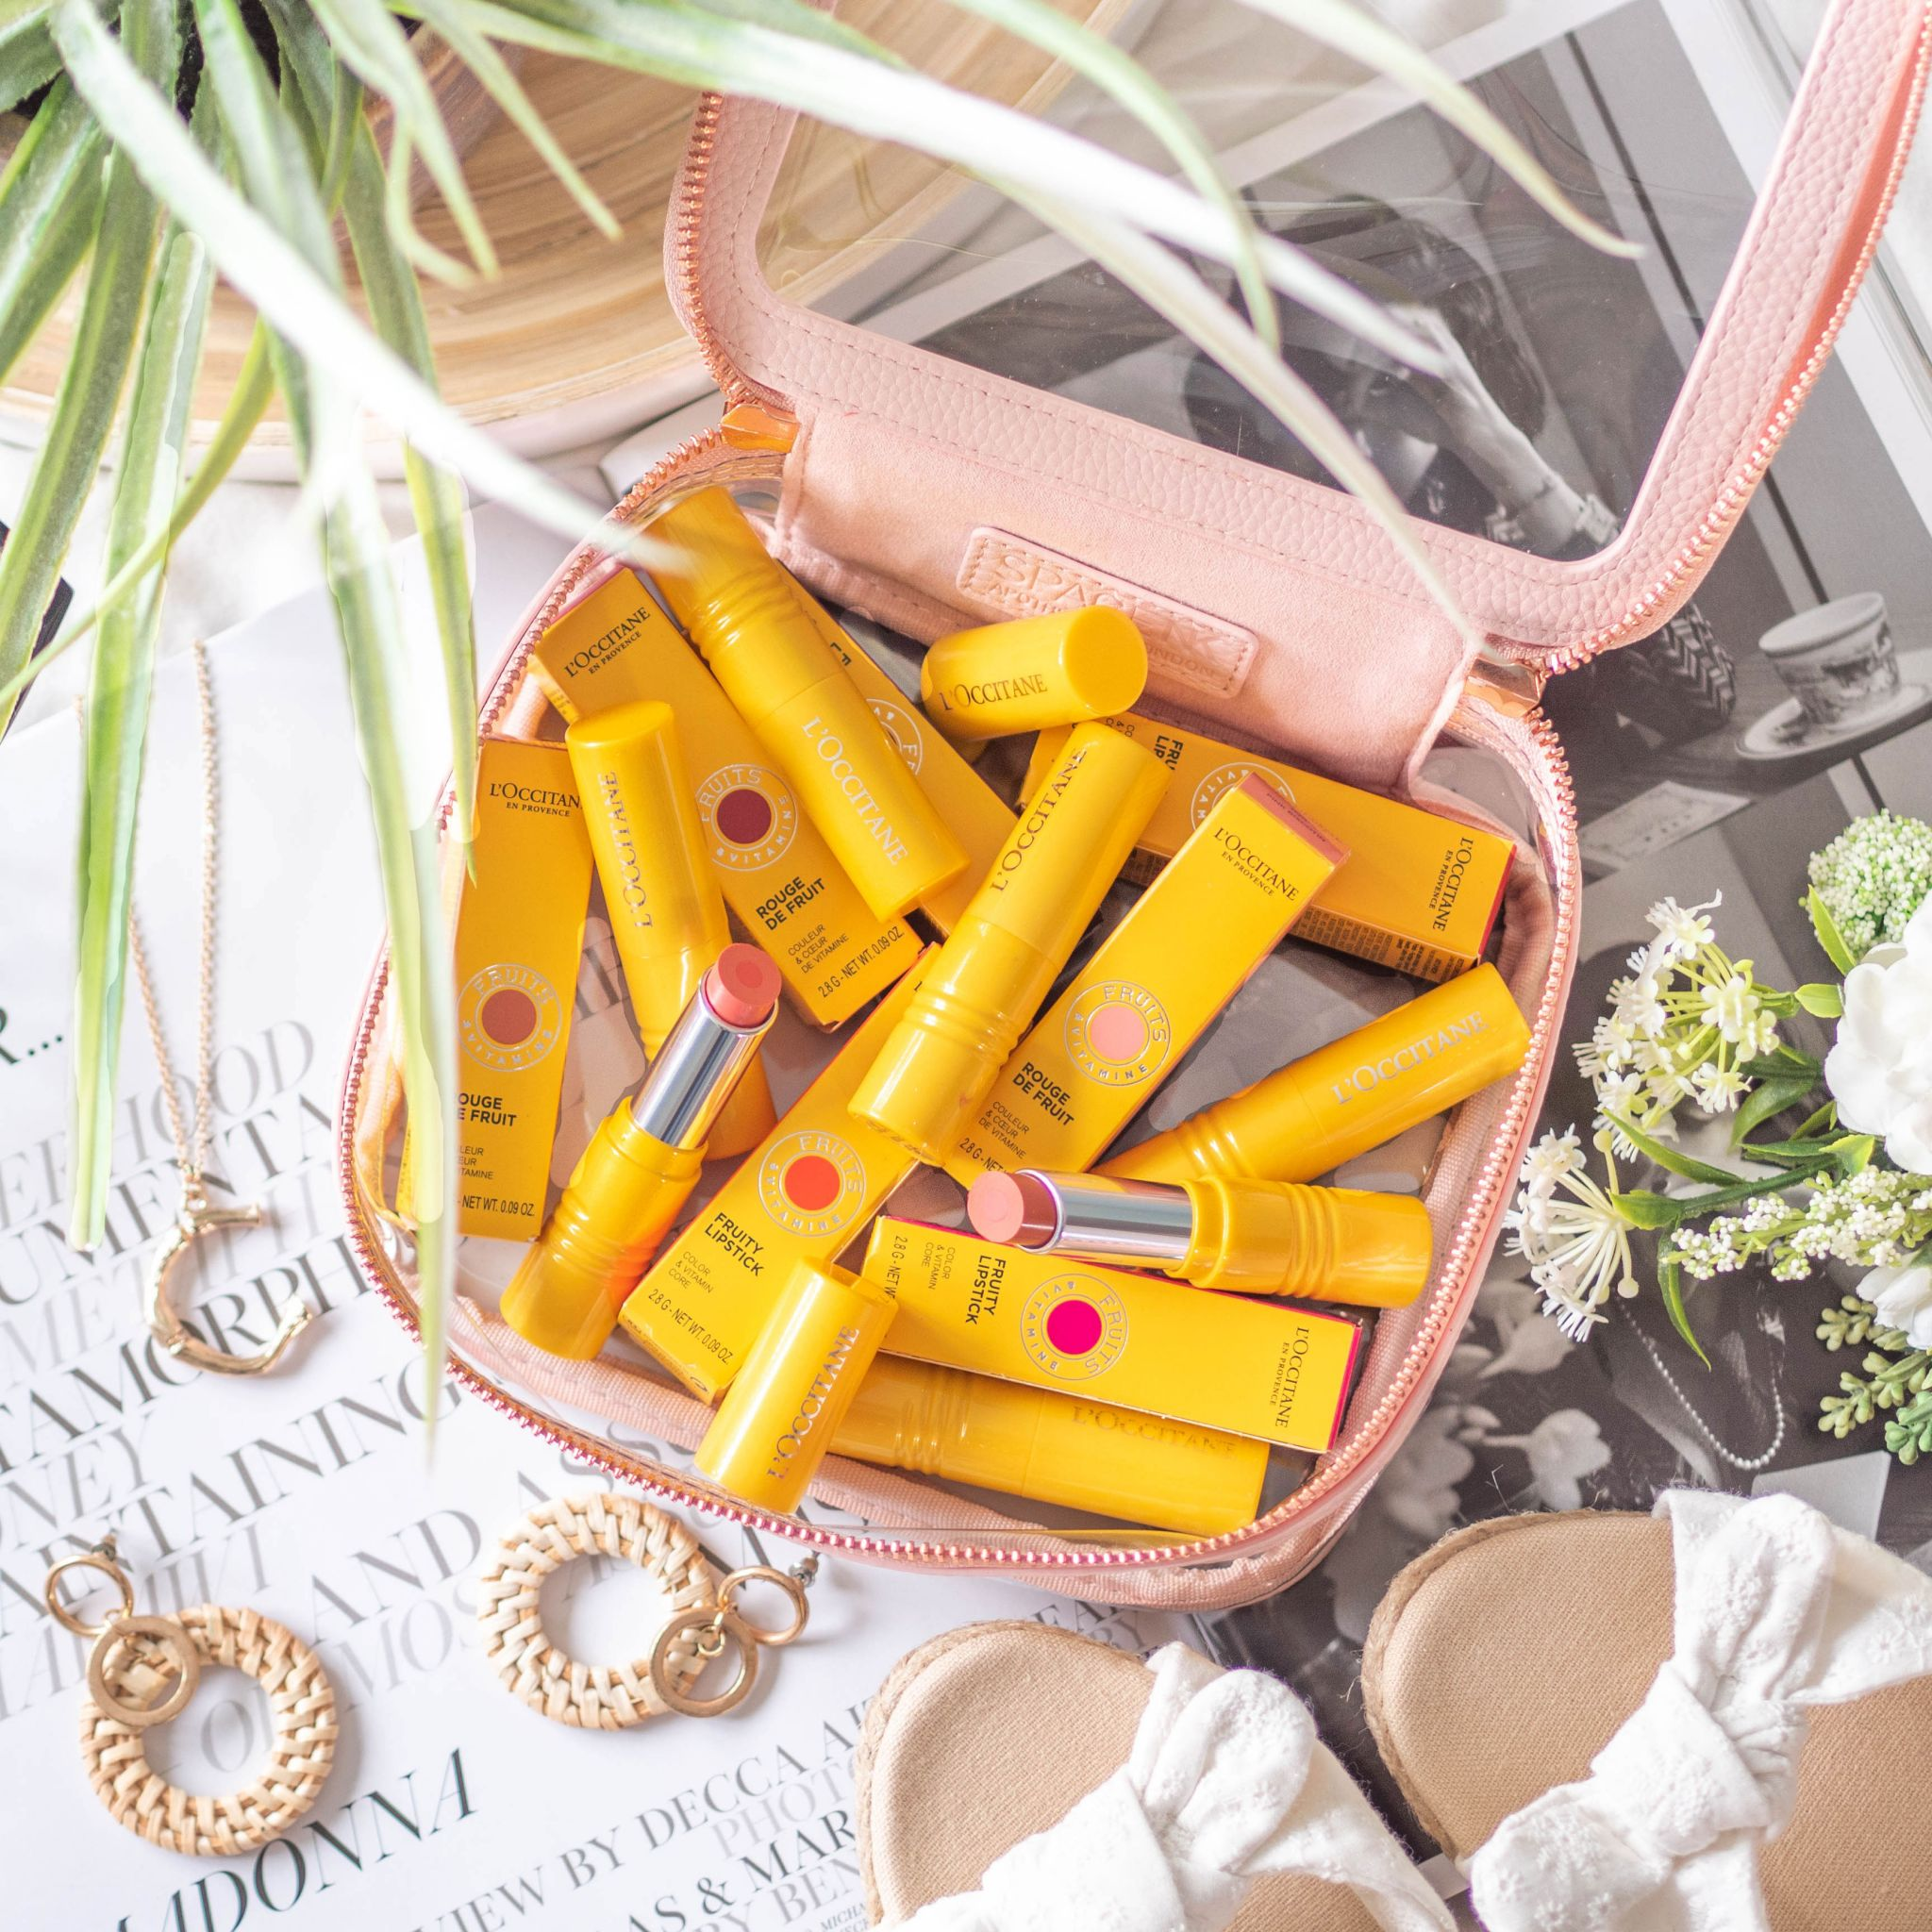 L'Occitane Fruity Lipstick Full Review and Swatches